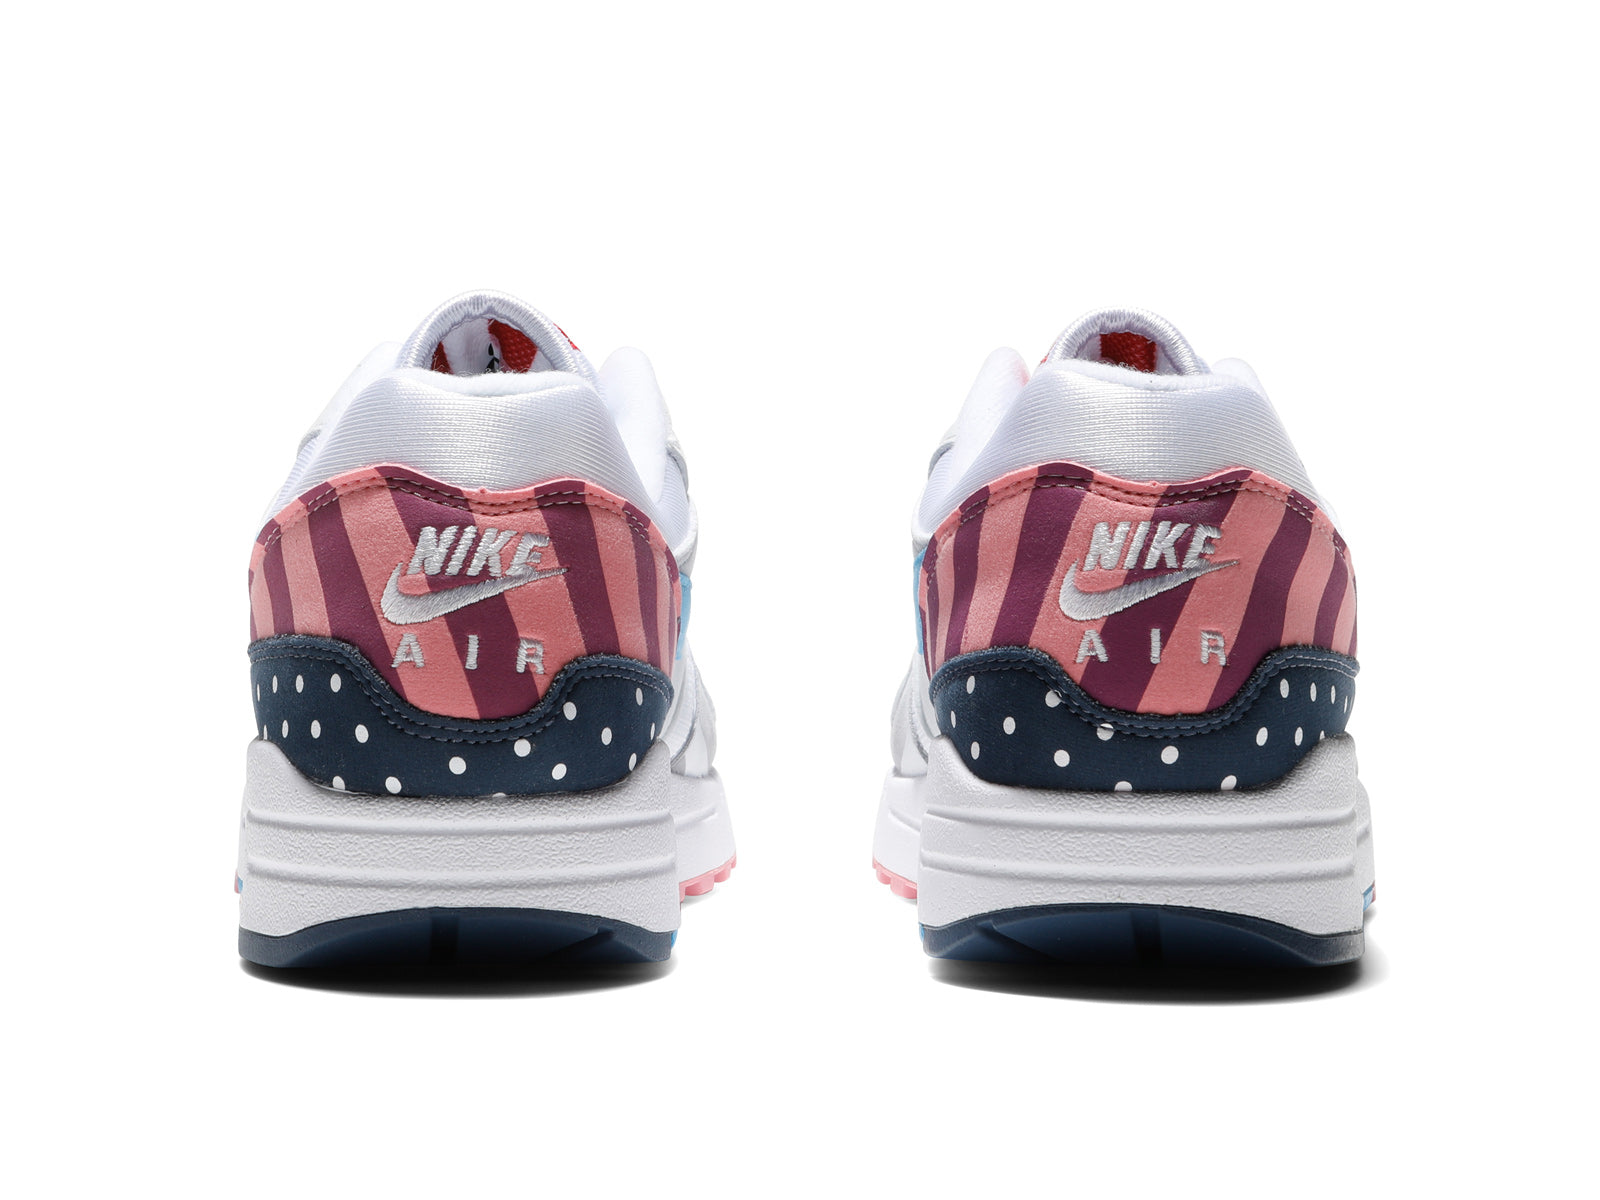 check out c9a50 843df separation shoes c4d5f 7635b nike parra burgundy patta air max 1 footwear  pinterest air max and footwear - fmbuhara.com